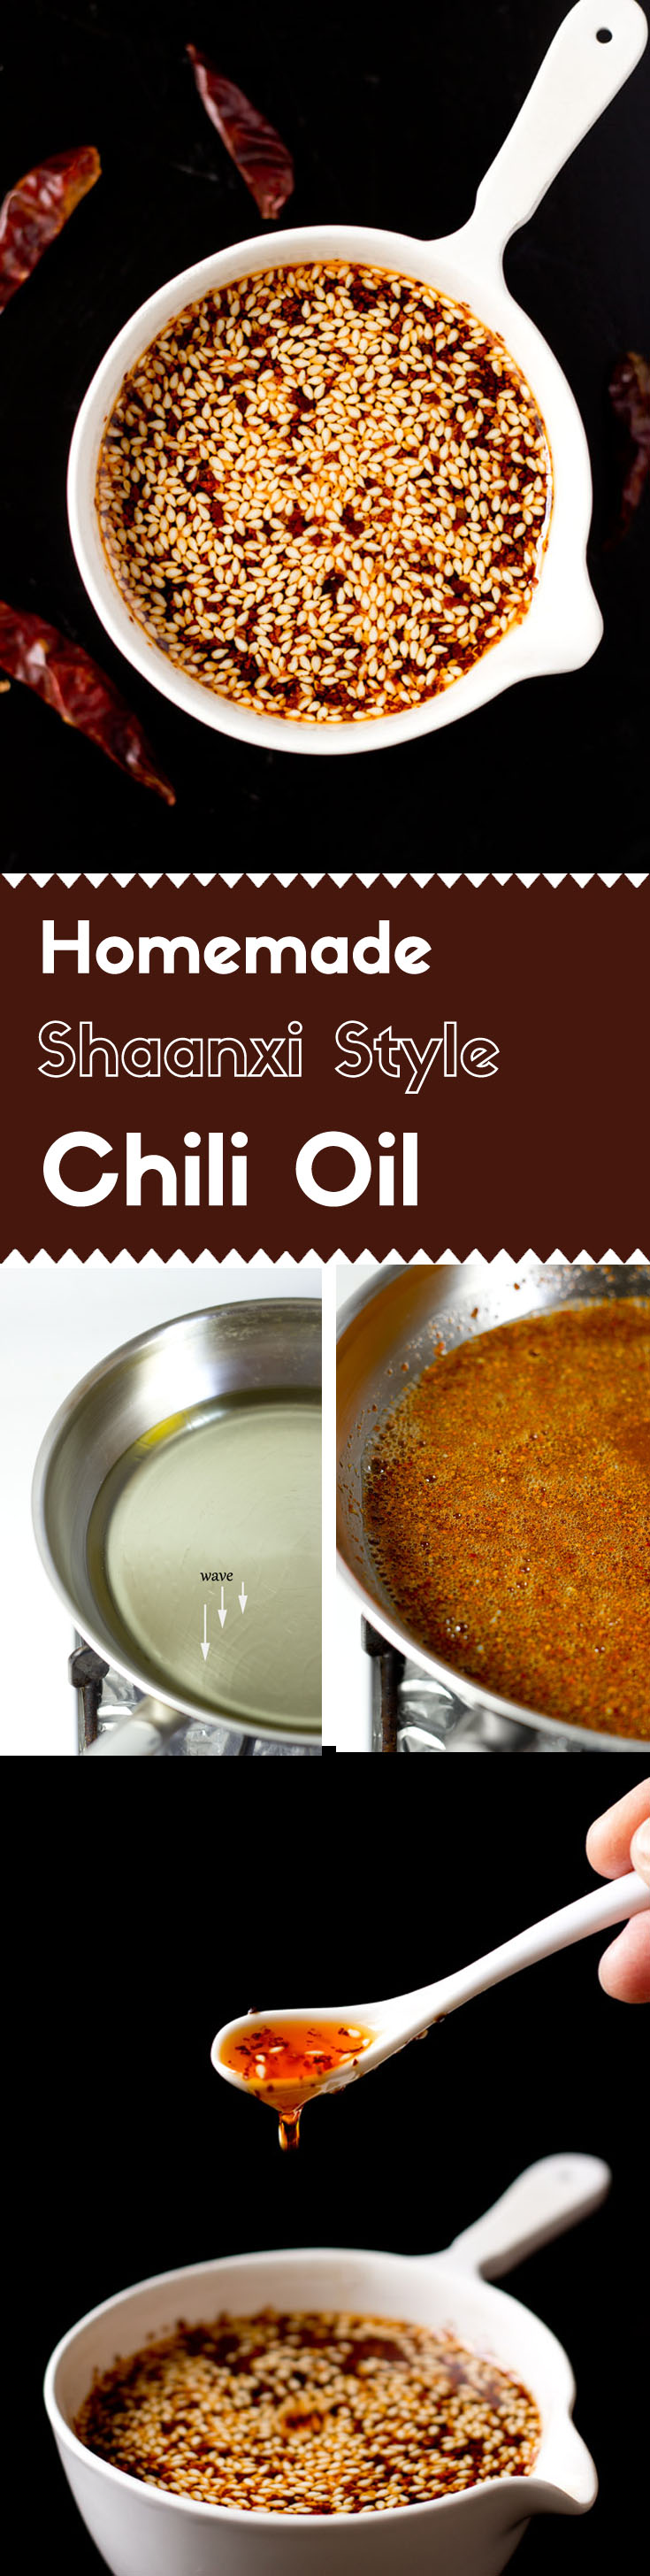 Shaanxi Style Chili Oil